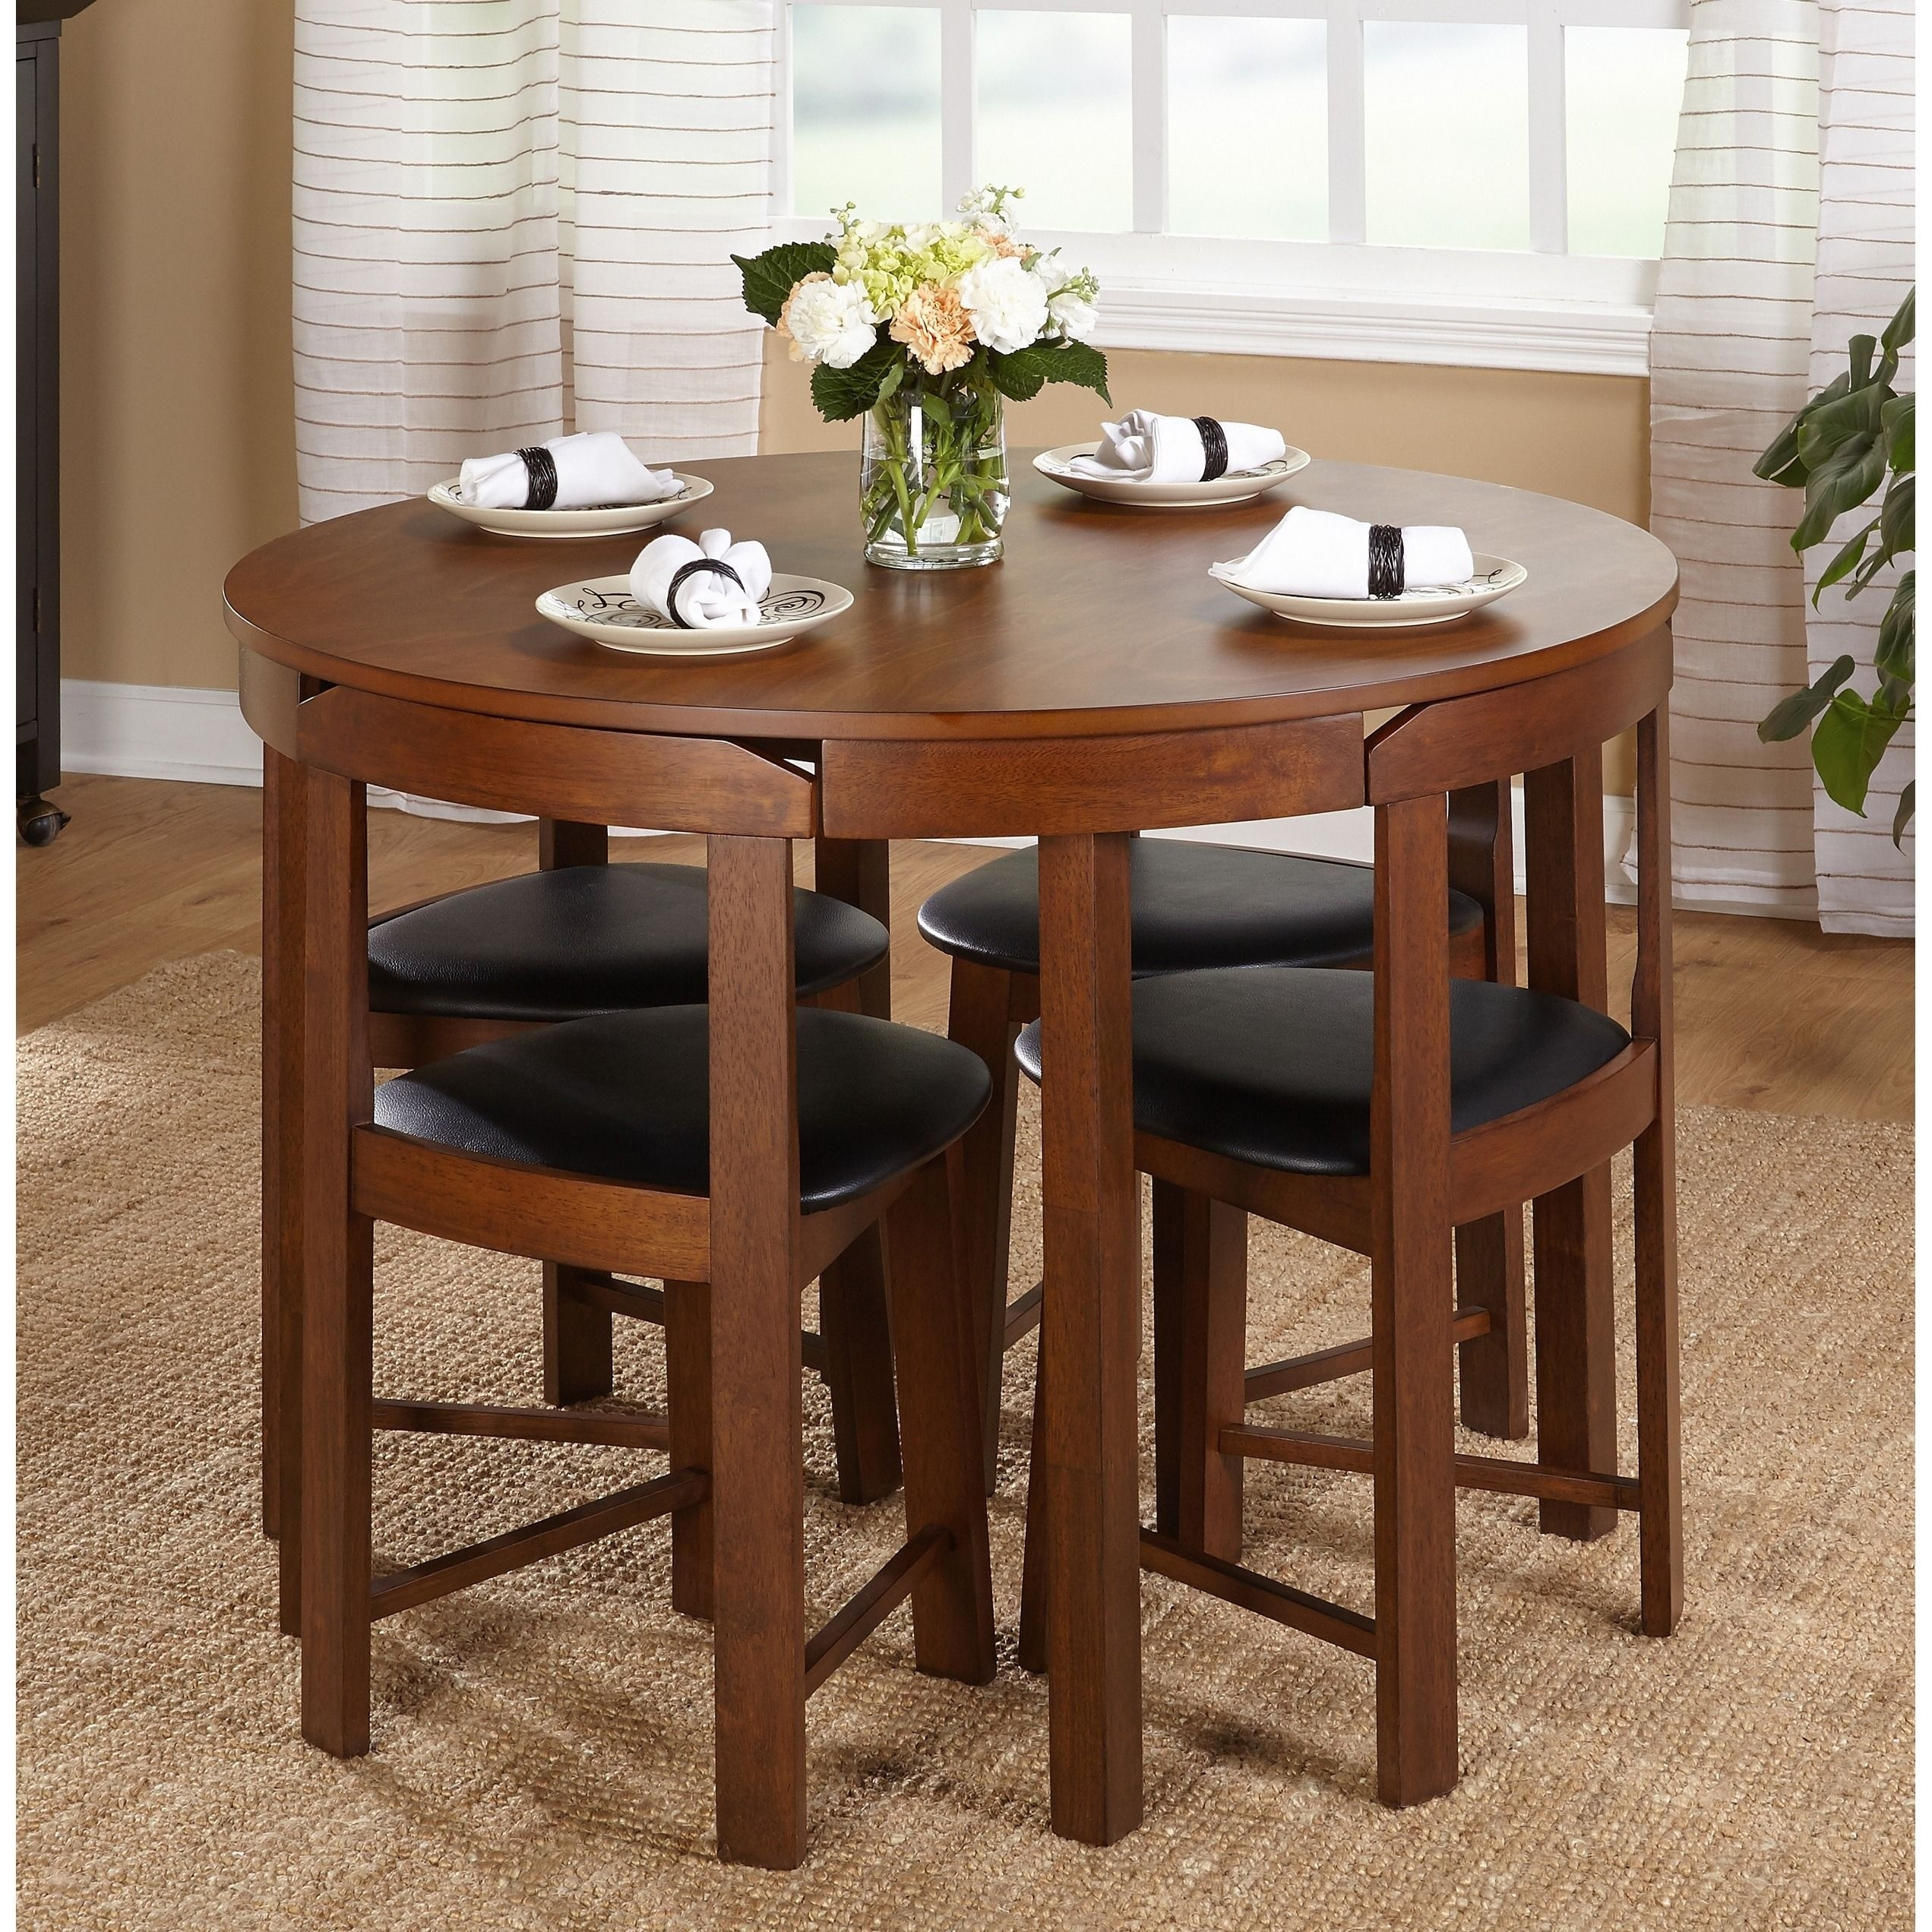 The 5 Piece Tobey Compact Dining Setsimple Living Offers Four With 2018 Valencia 5 Piece 60 Inch Round Dining Sets (View 20 of 20)